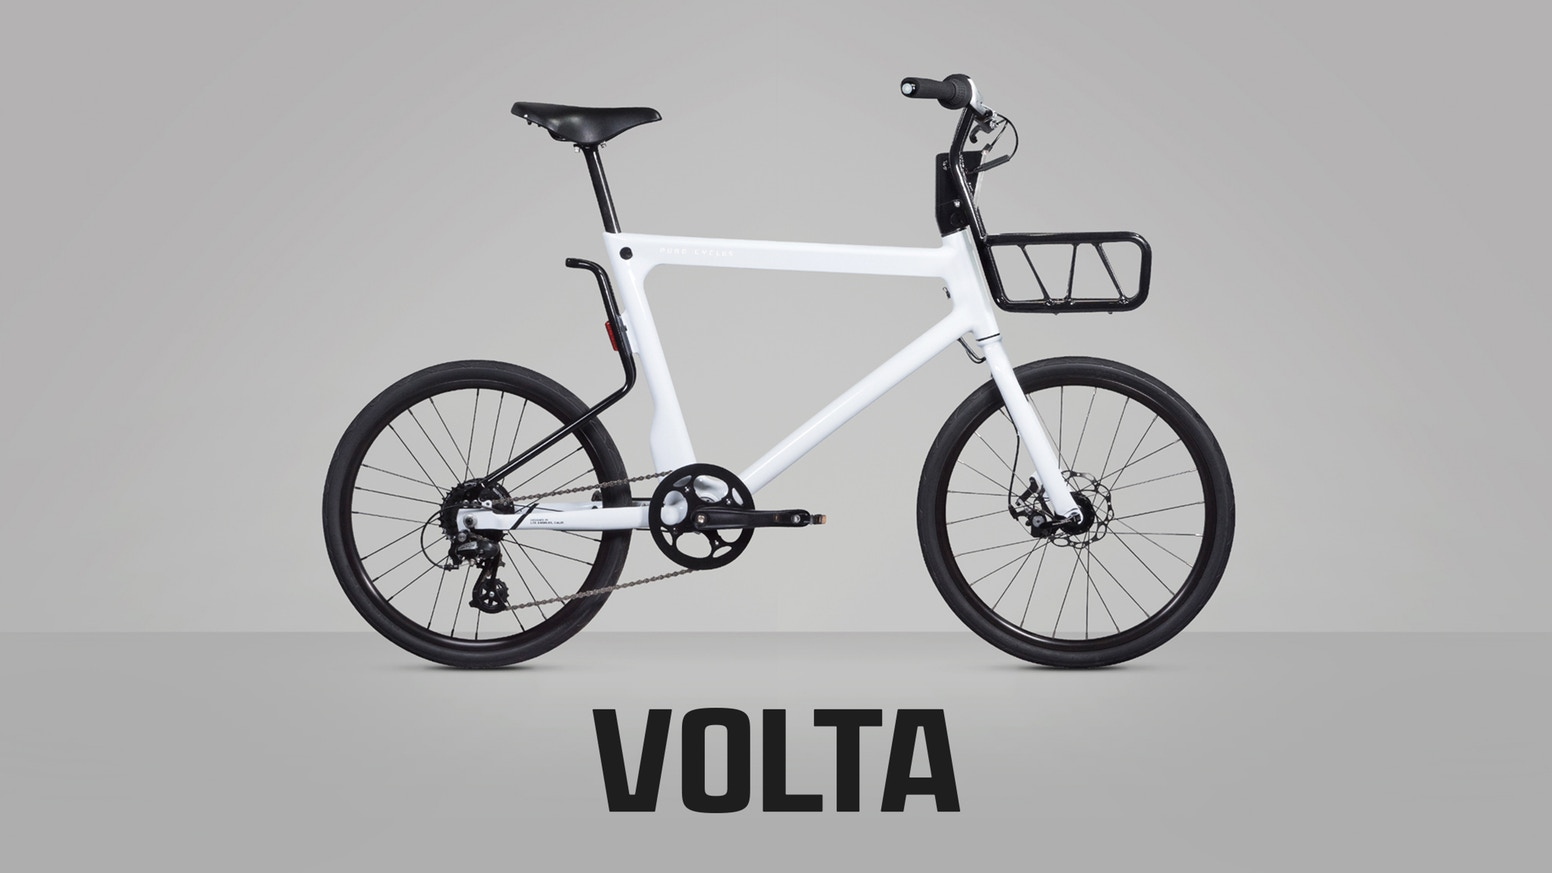 Pure Cycles is funding its first electric bike, the Volta, on Kickstarter